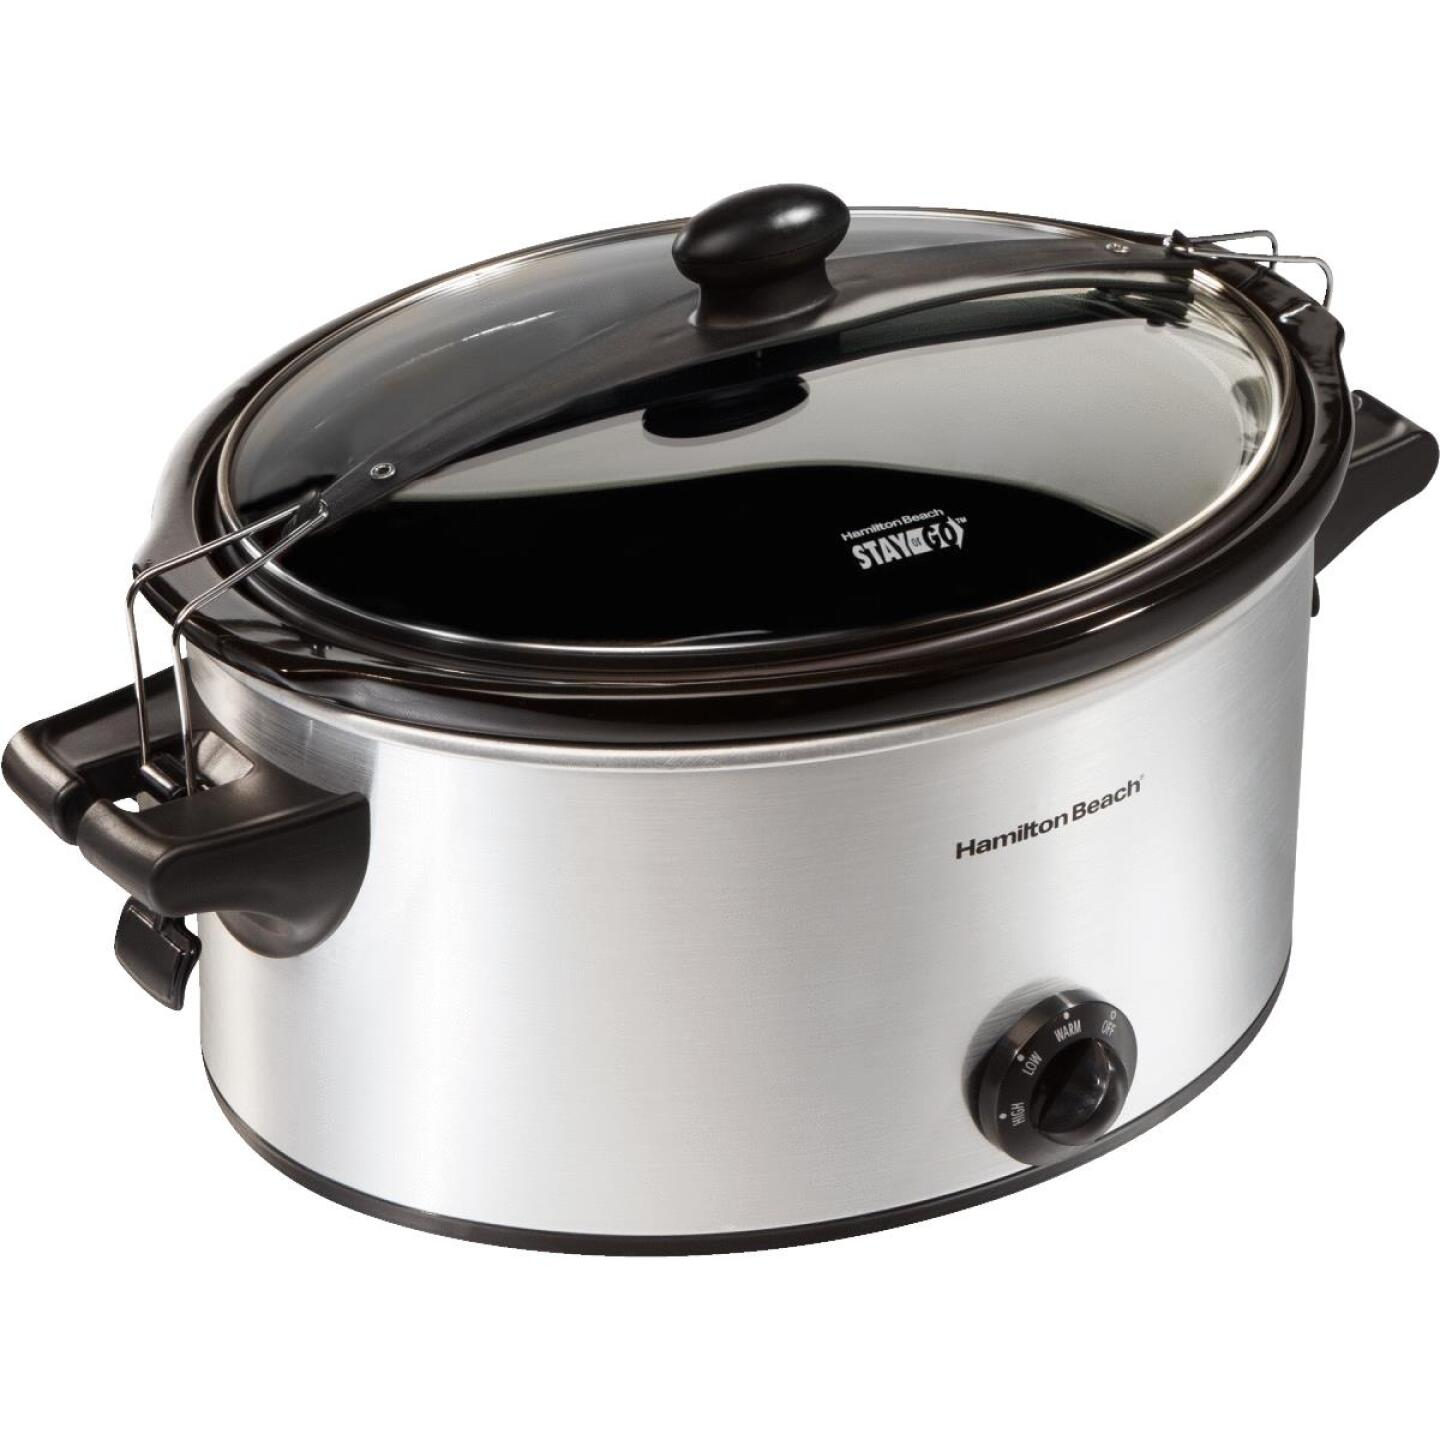 Hamilton Beach Stay or Go 6 Qt. Stainless Steel Slow Cooker Image 2